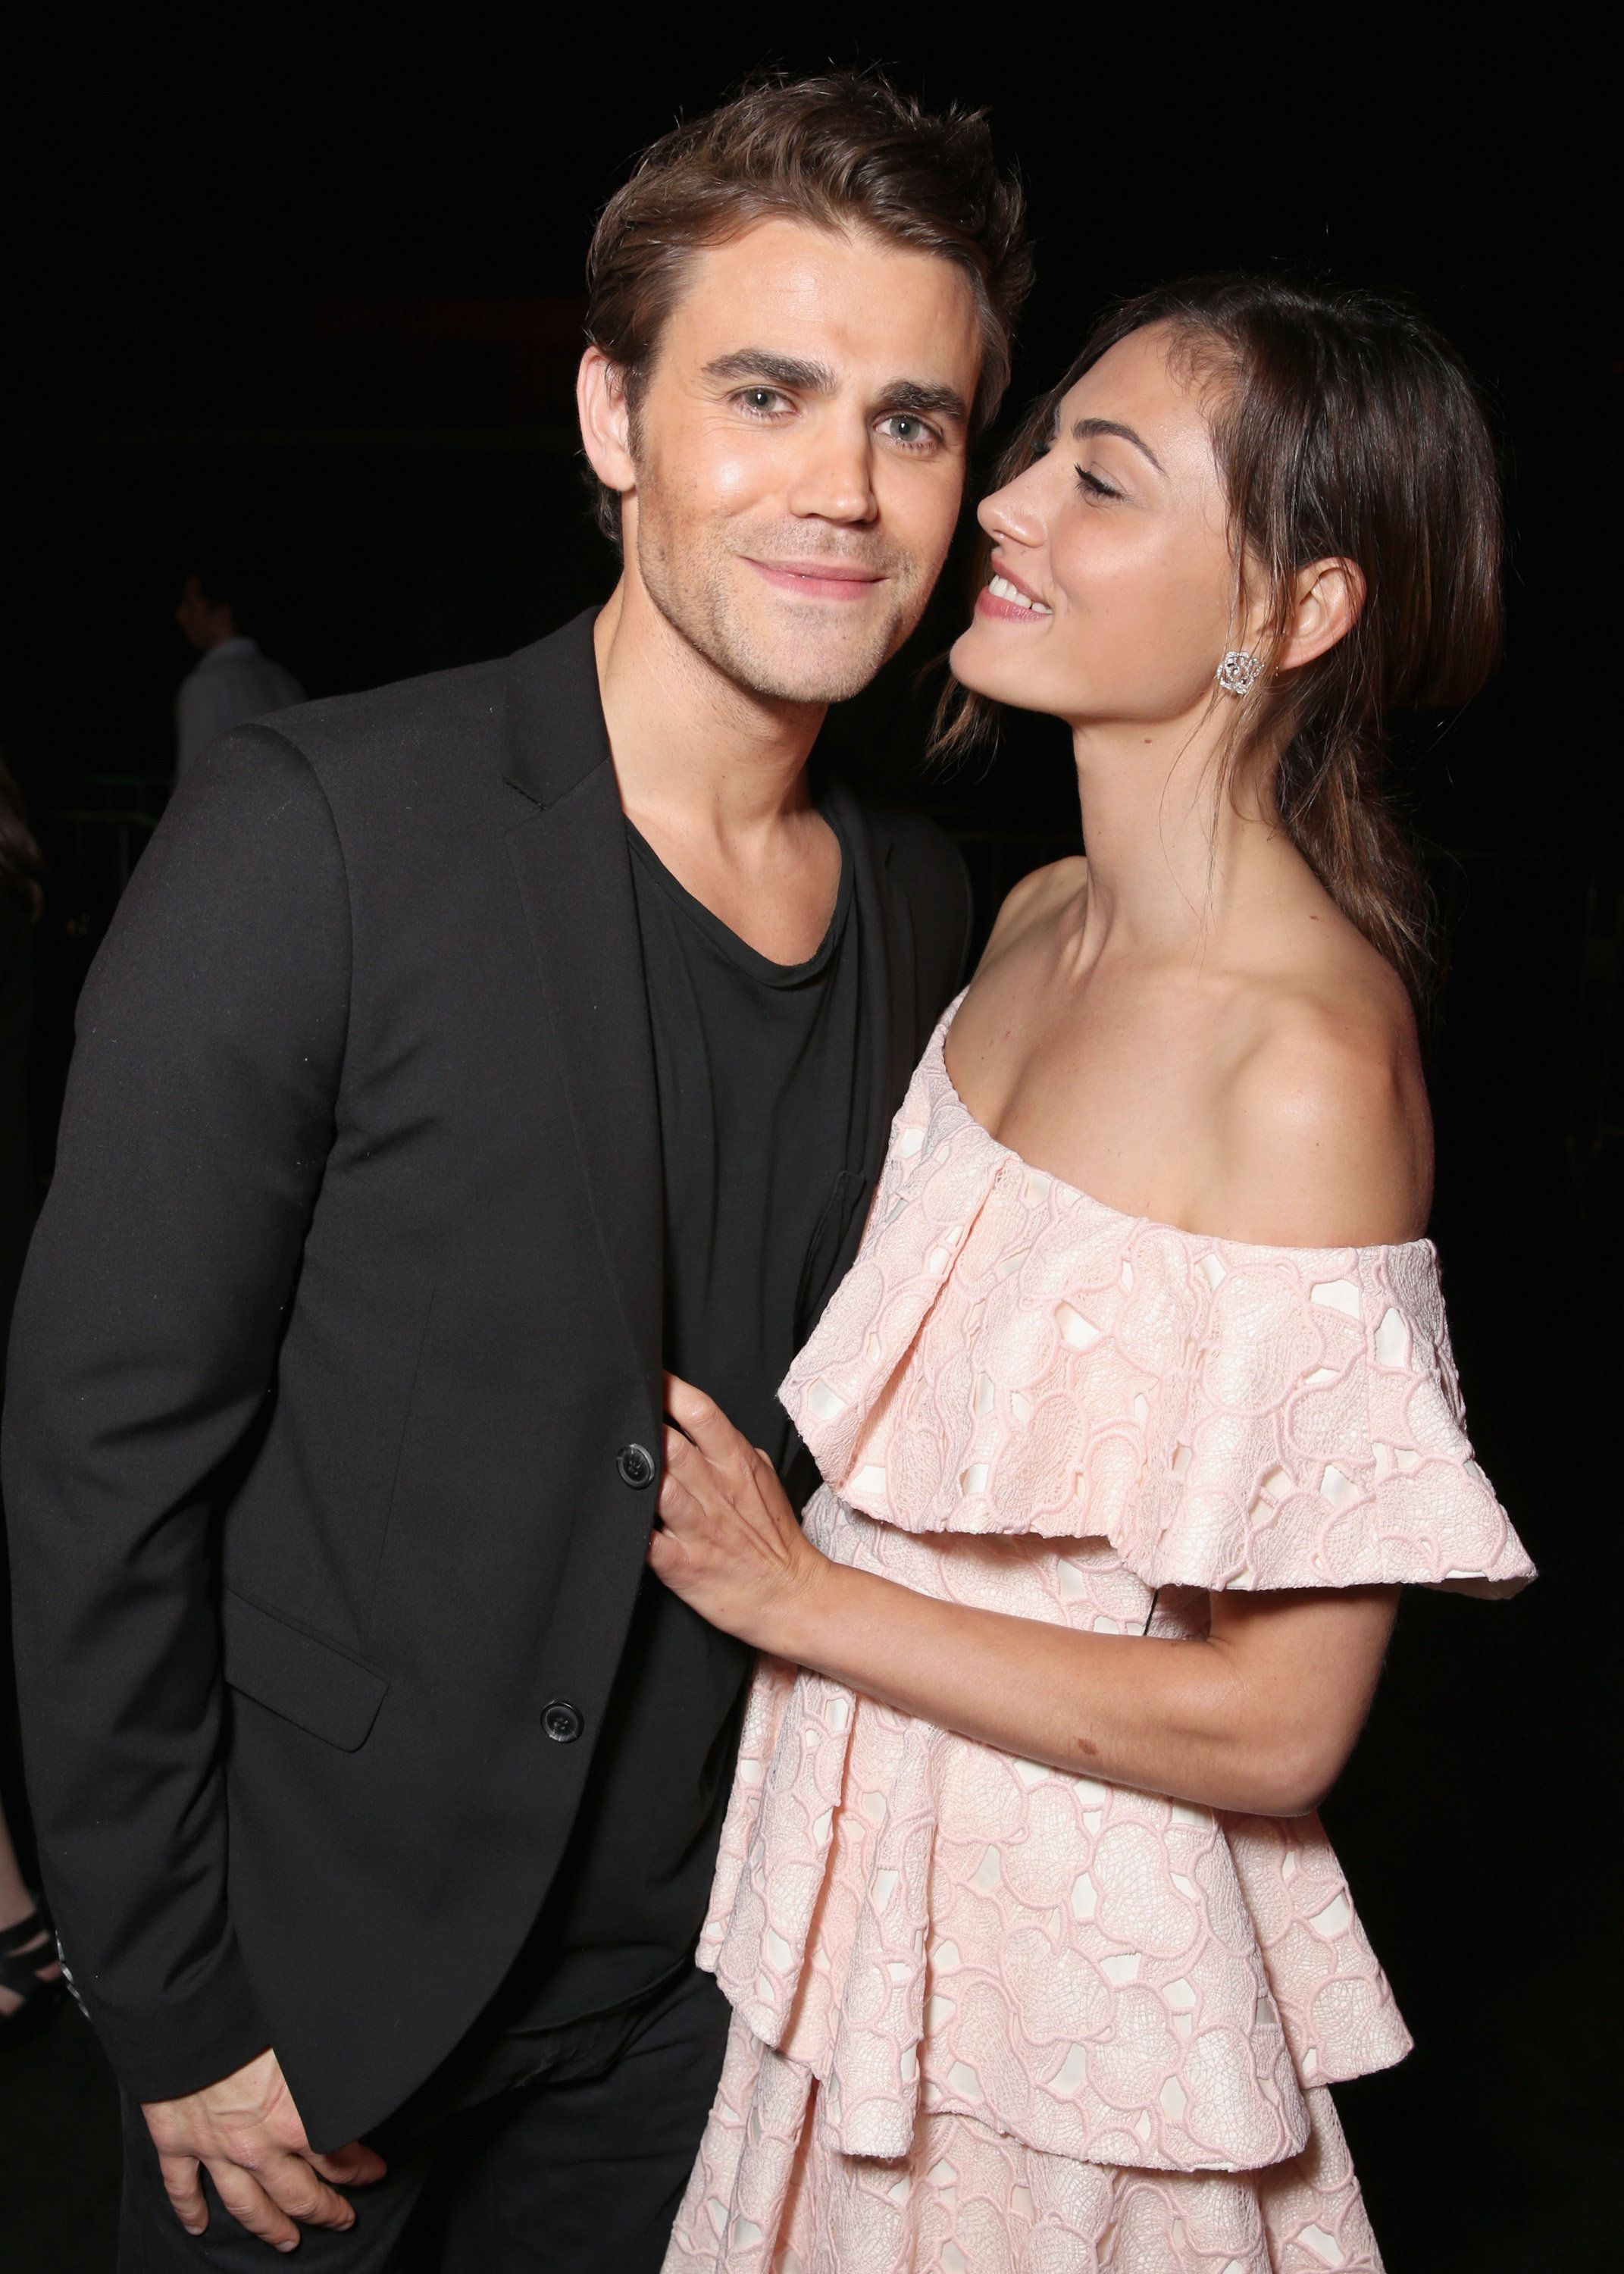 Who is paul wesley dating in Perth